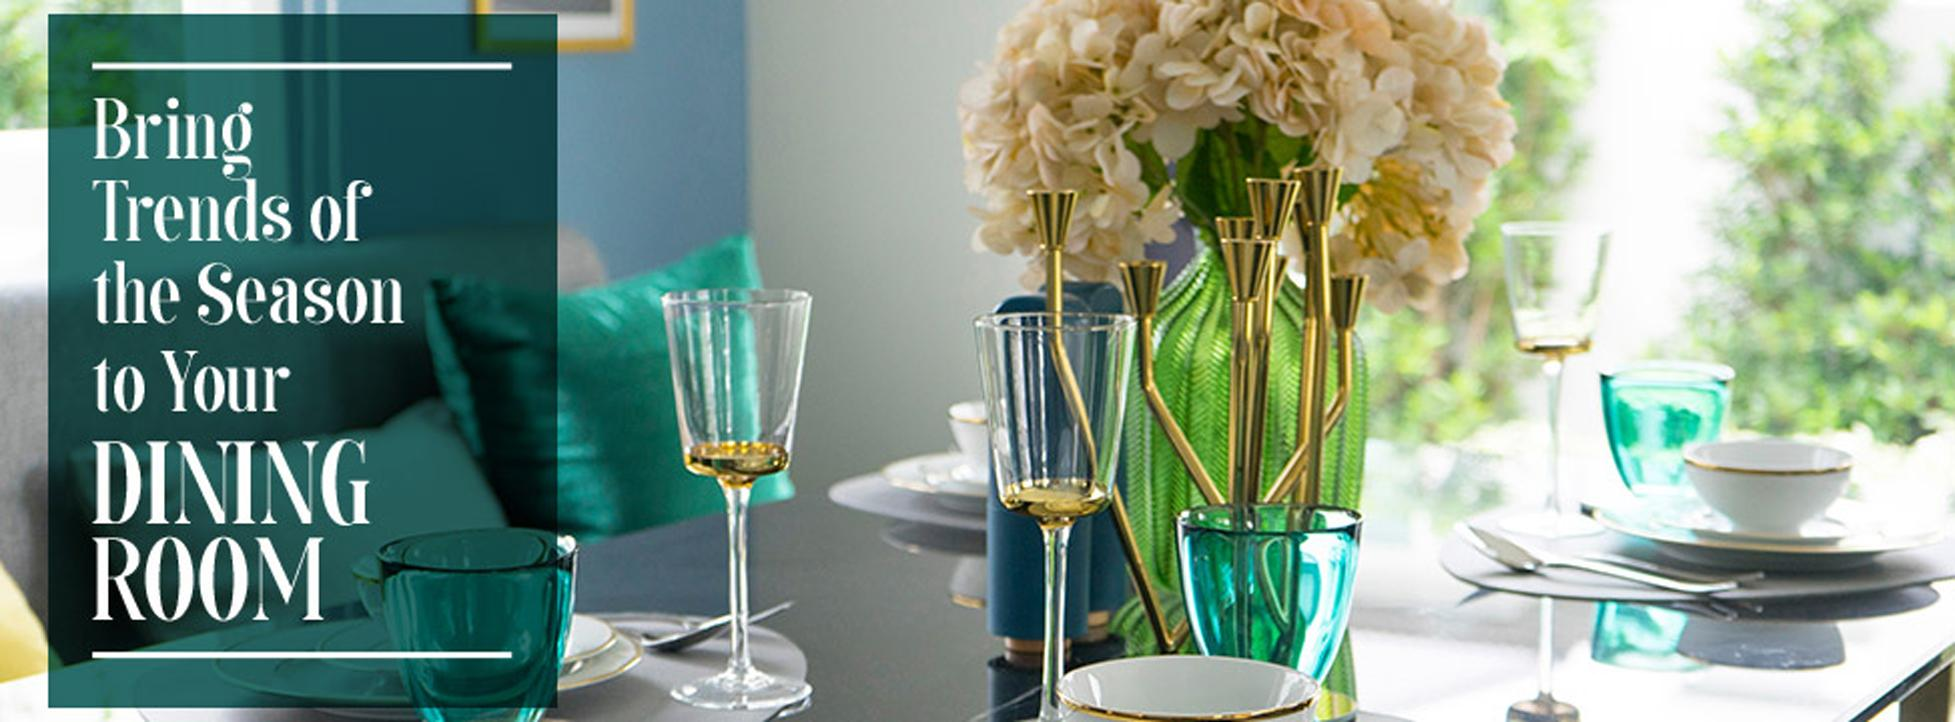 Bring the Trends of the Season to Your Dining Table